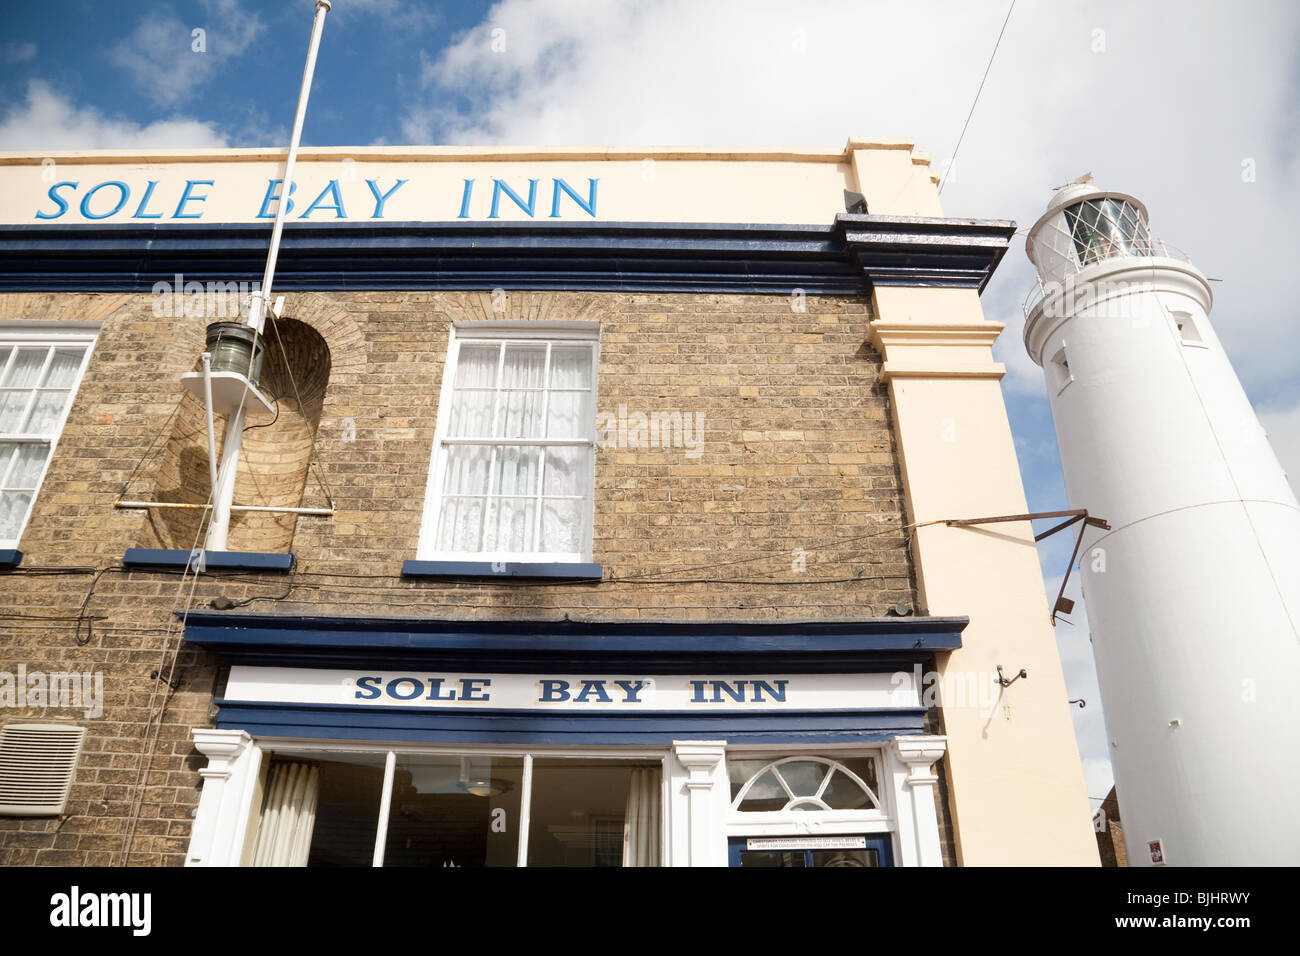 The Sole Bay Inn, and lighthouse, Southwold, Suffolk UK - Stock Image